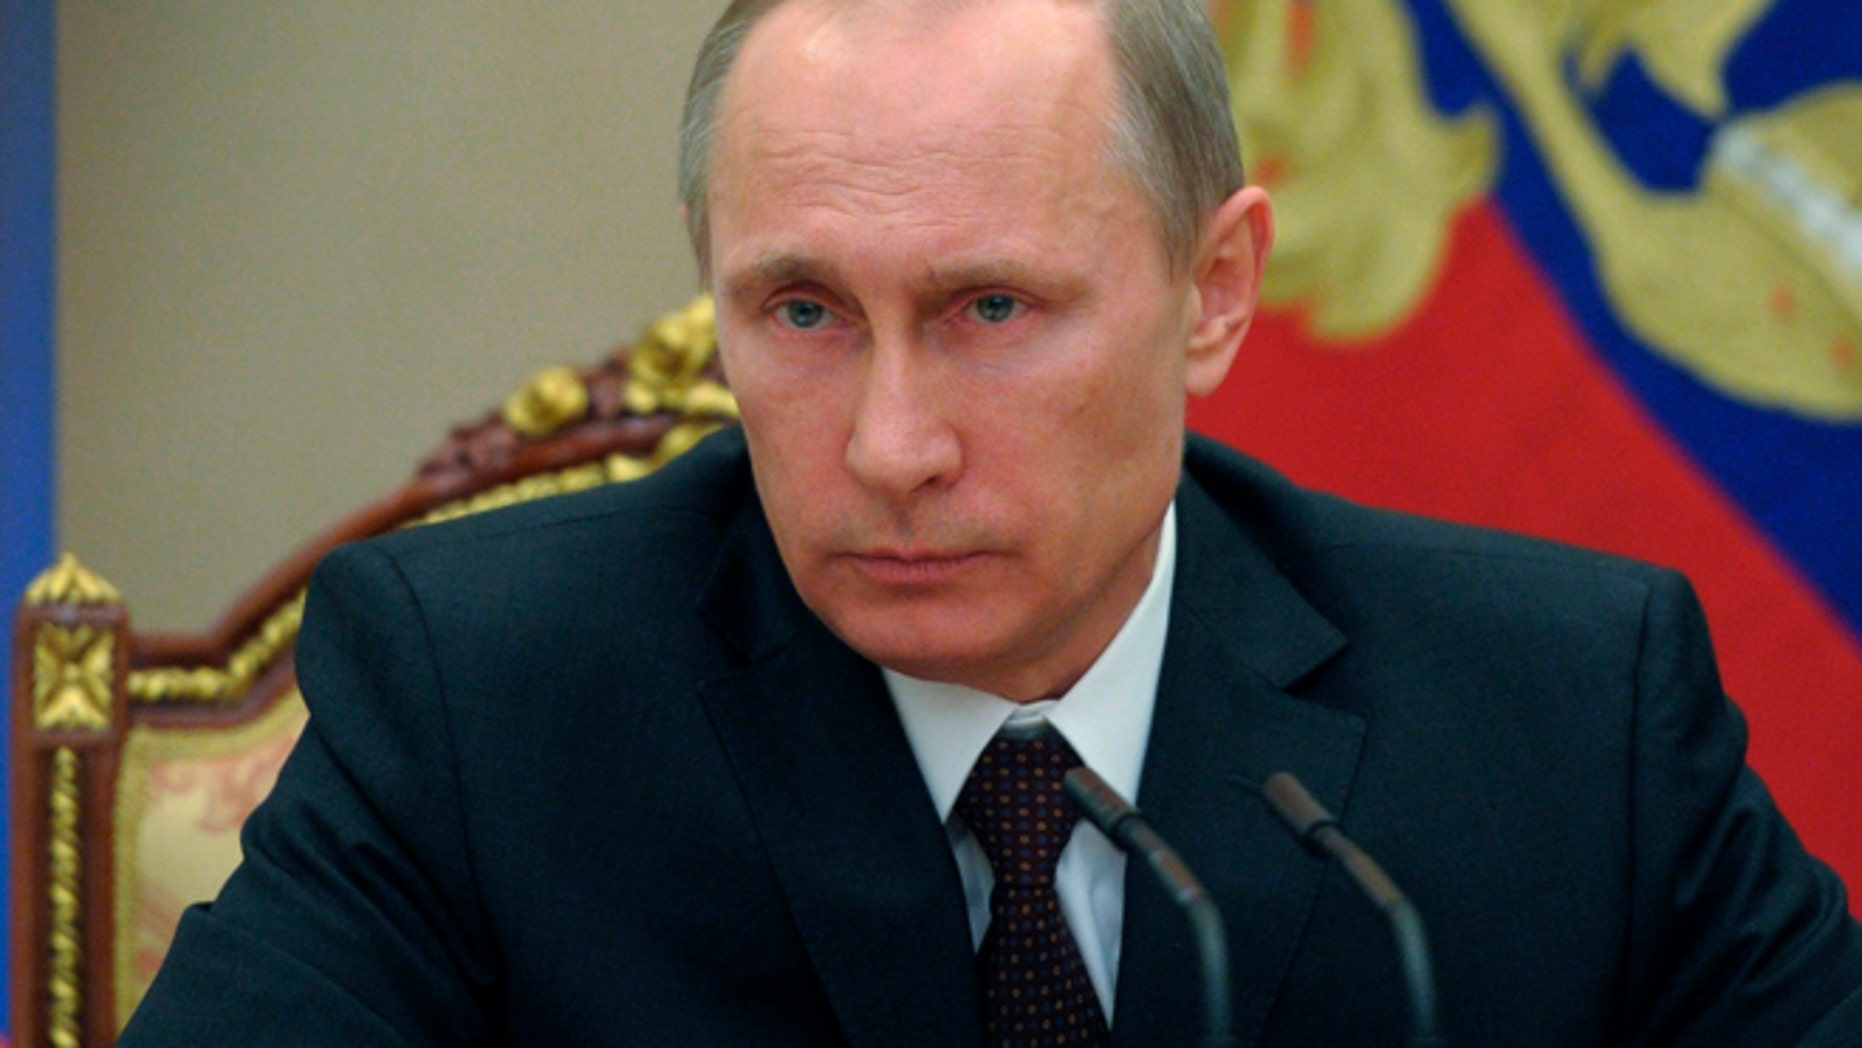 """March 21: Vladimir Putin hailed the incorporation of Crimea into Russia as a """"remarkable event"""" before he signed the bills into law in the Kremlin."""